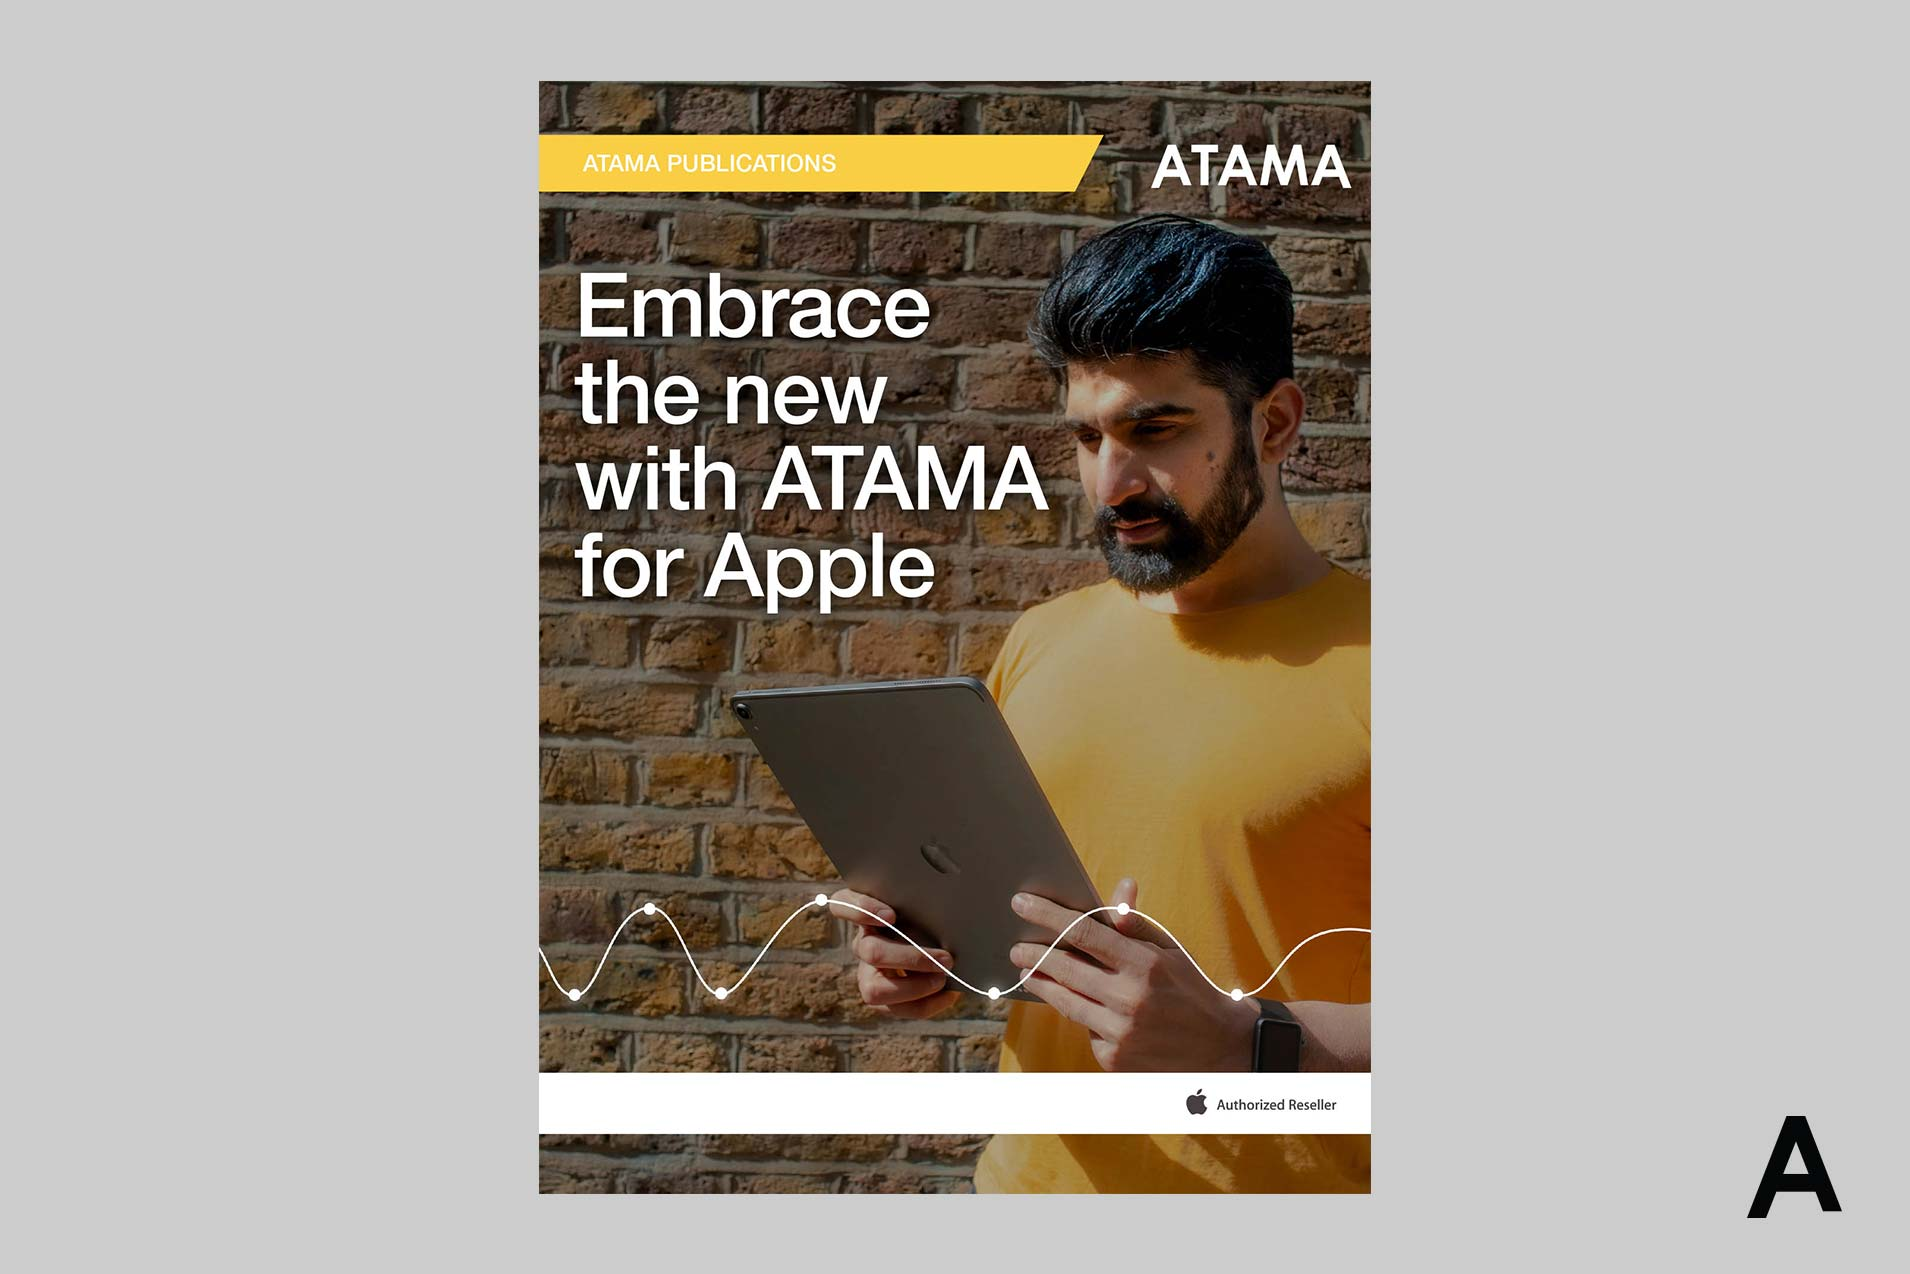 Embrace the new with ATAMA for Apple